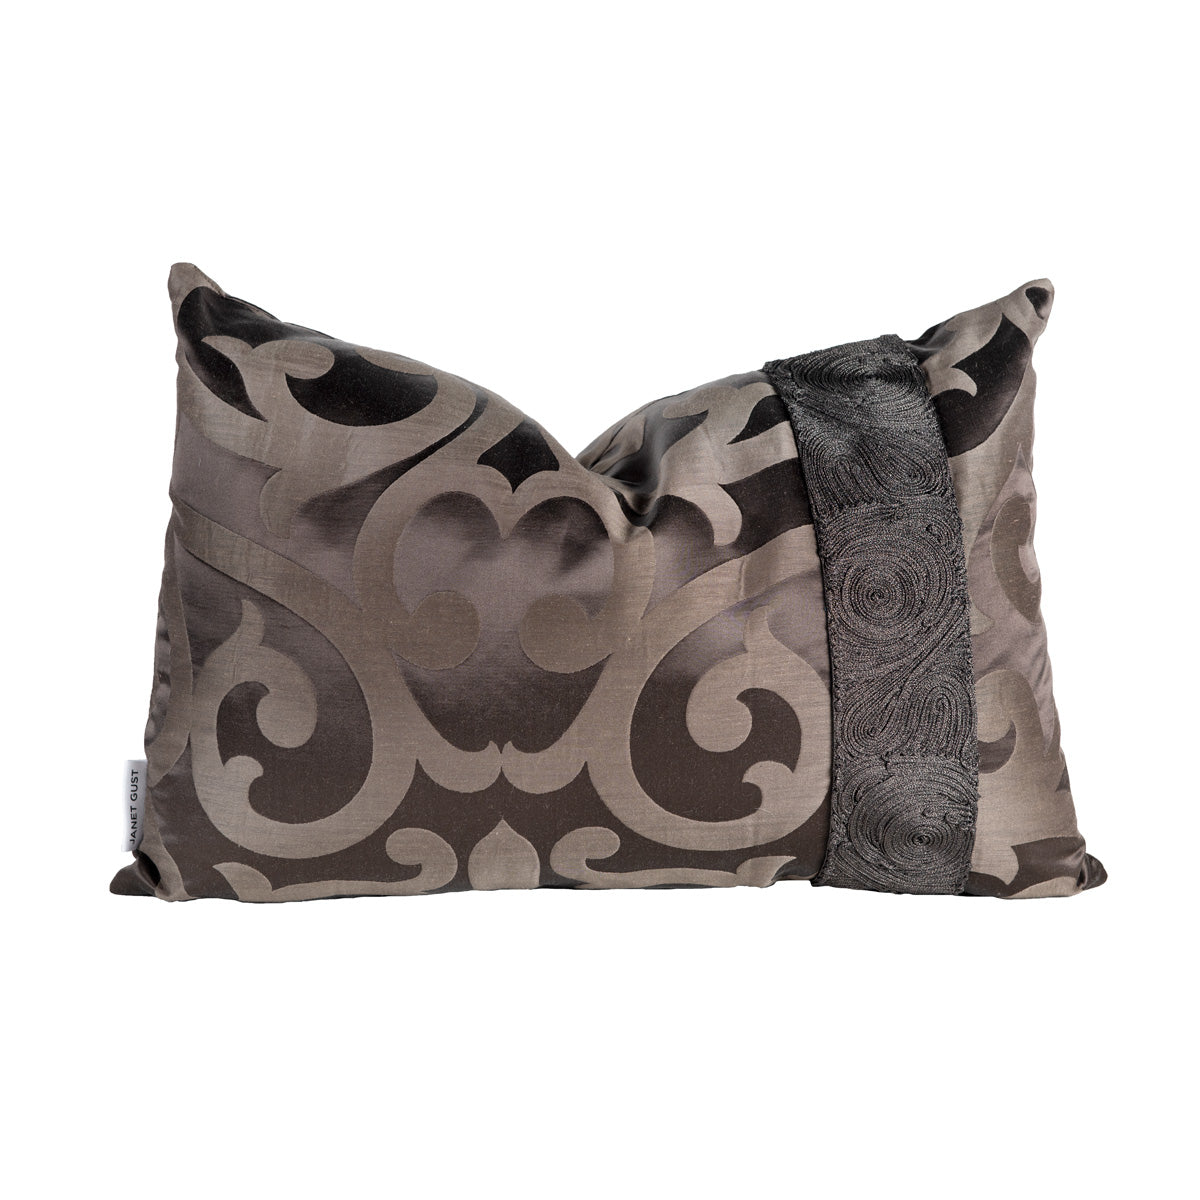 Chocolate Brown Geometric Satin Pillow With Beaded Trim